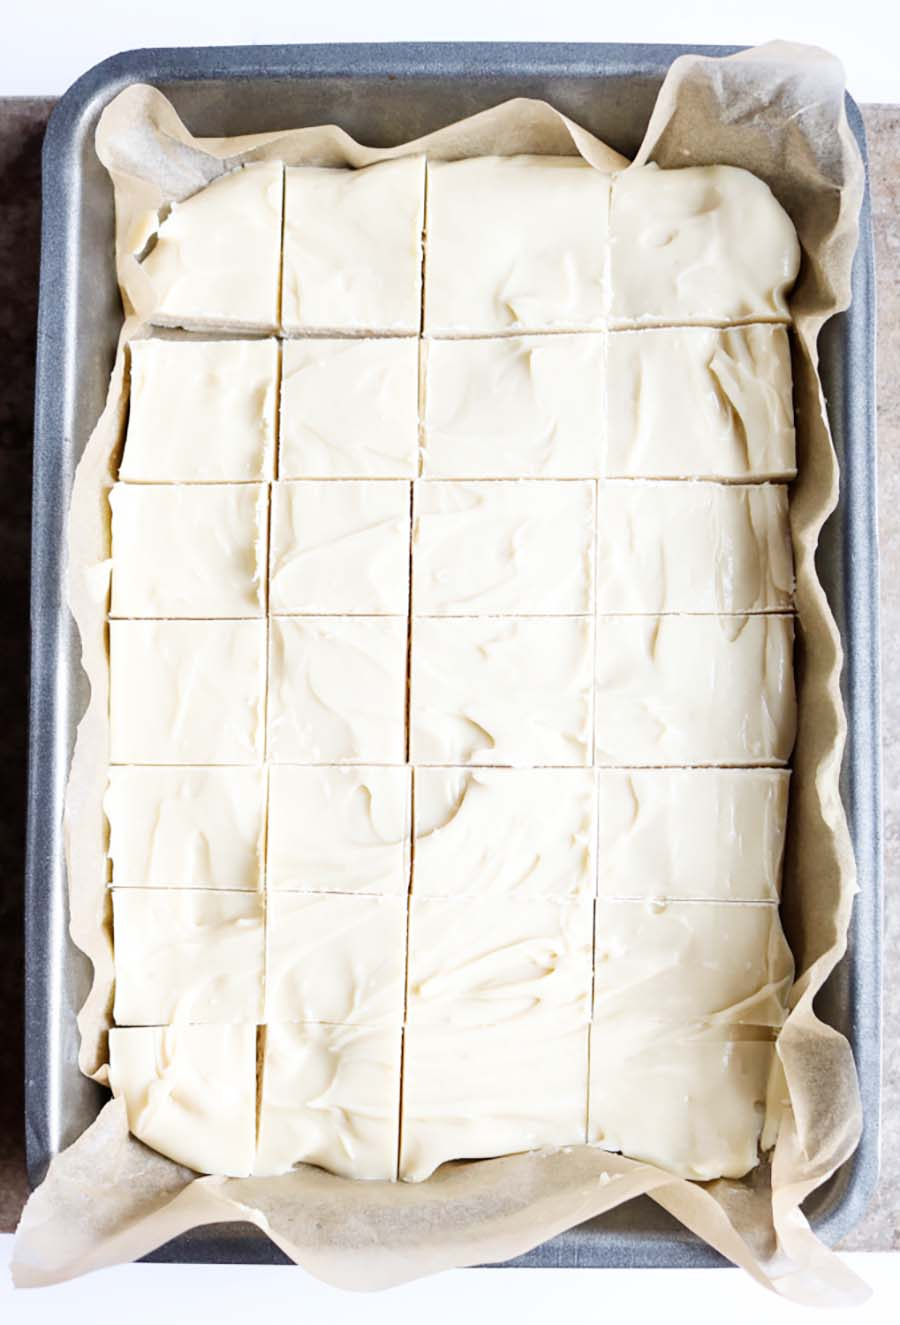 Overhead view of a pan of white chocolate fudge cut into squares.